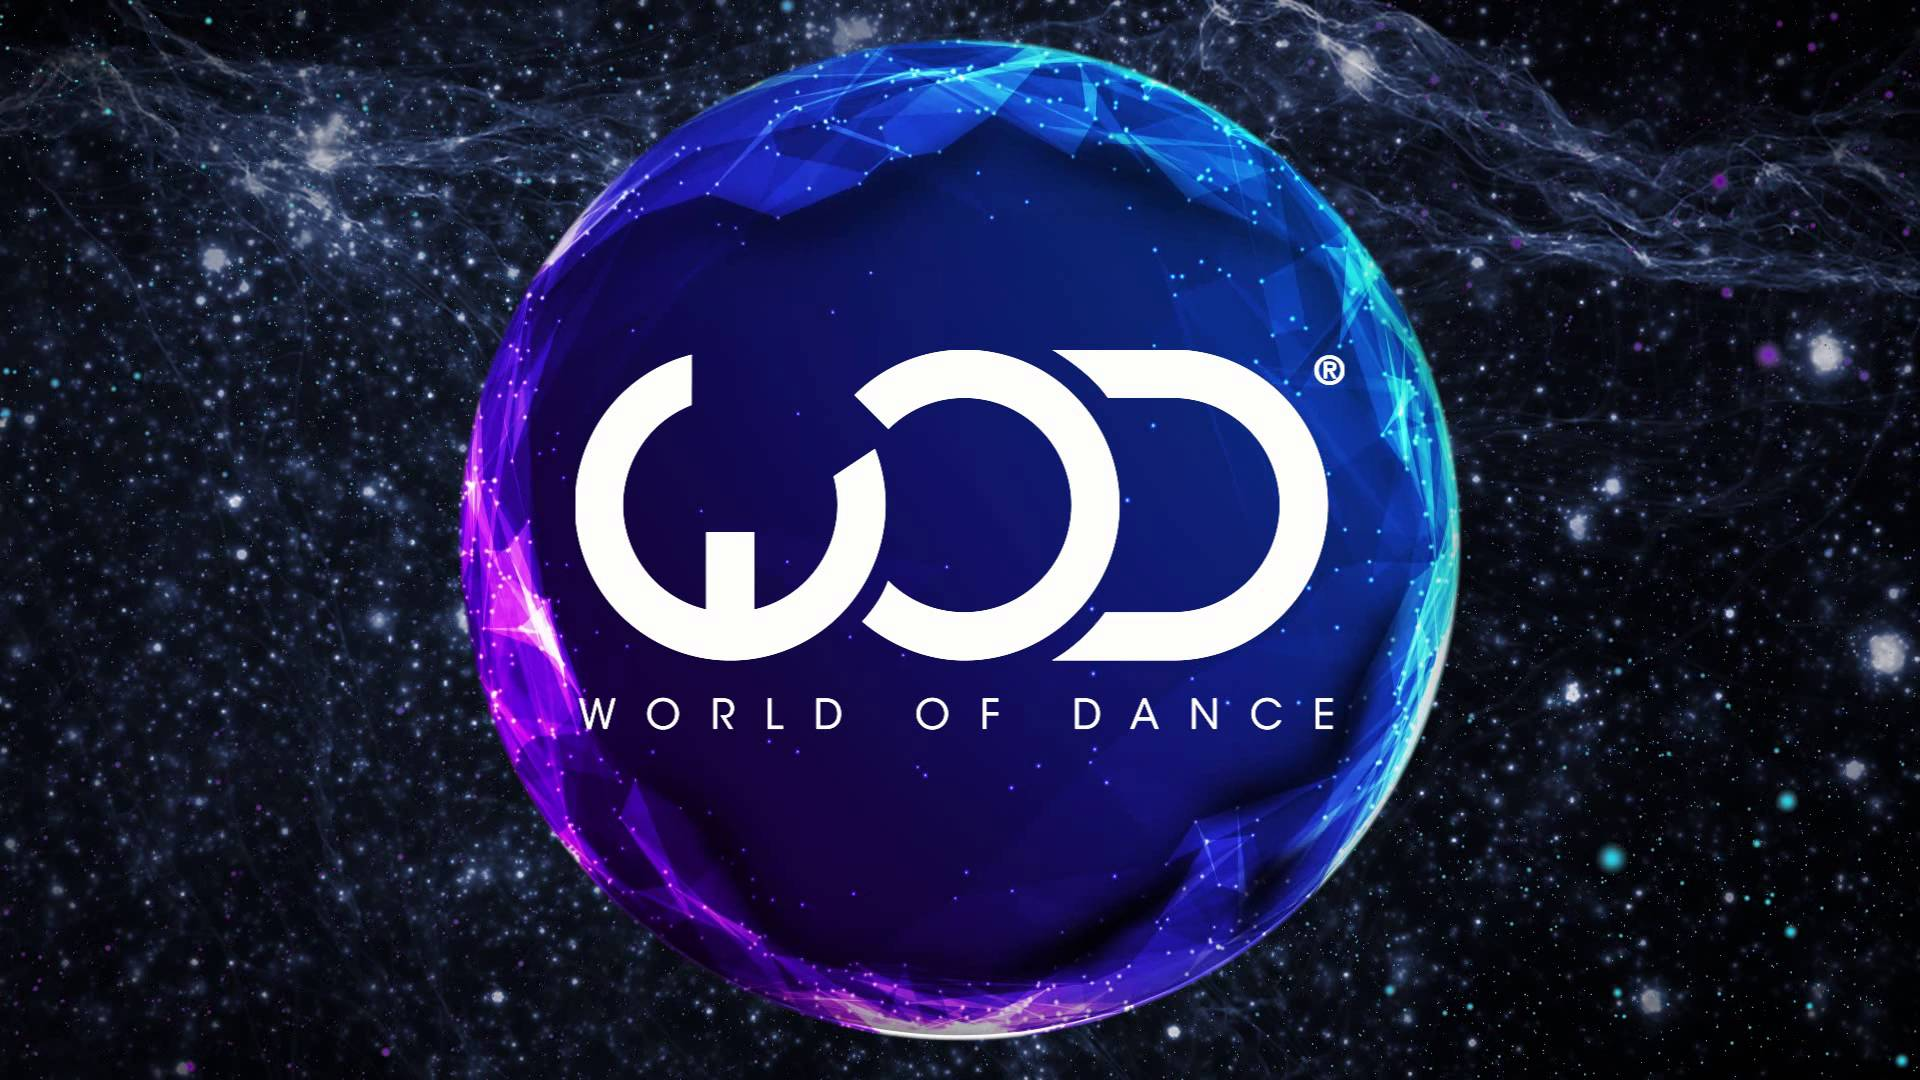 World Of Dance Wallpapers Wallpaper Cave